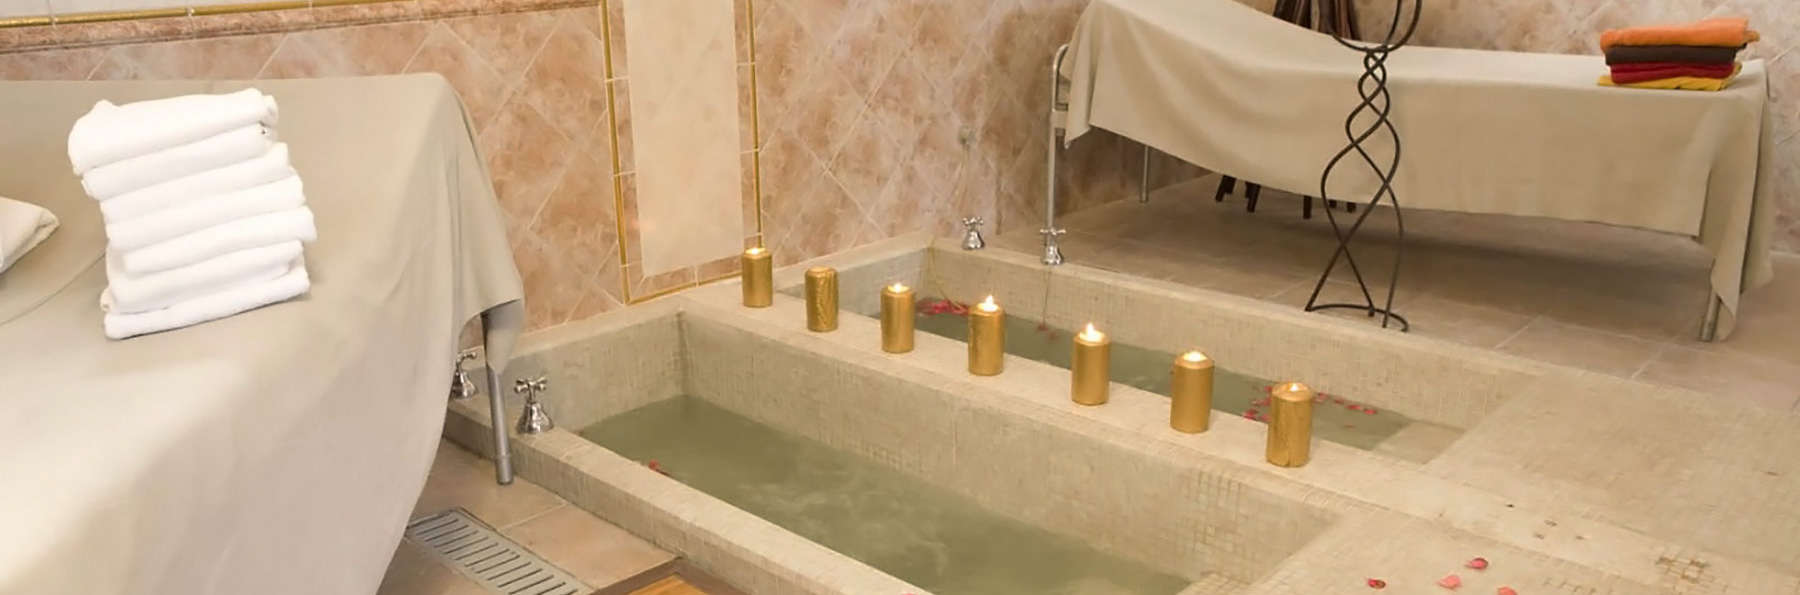 Weekend Relax a Abano Terme (min. 3 notti)